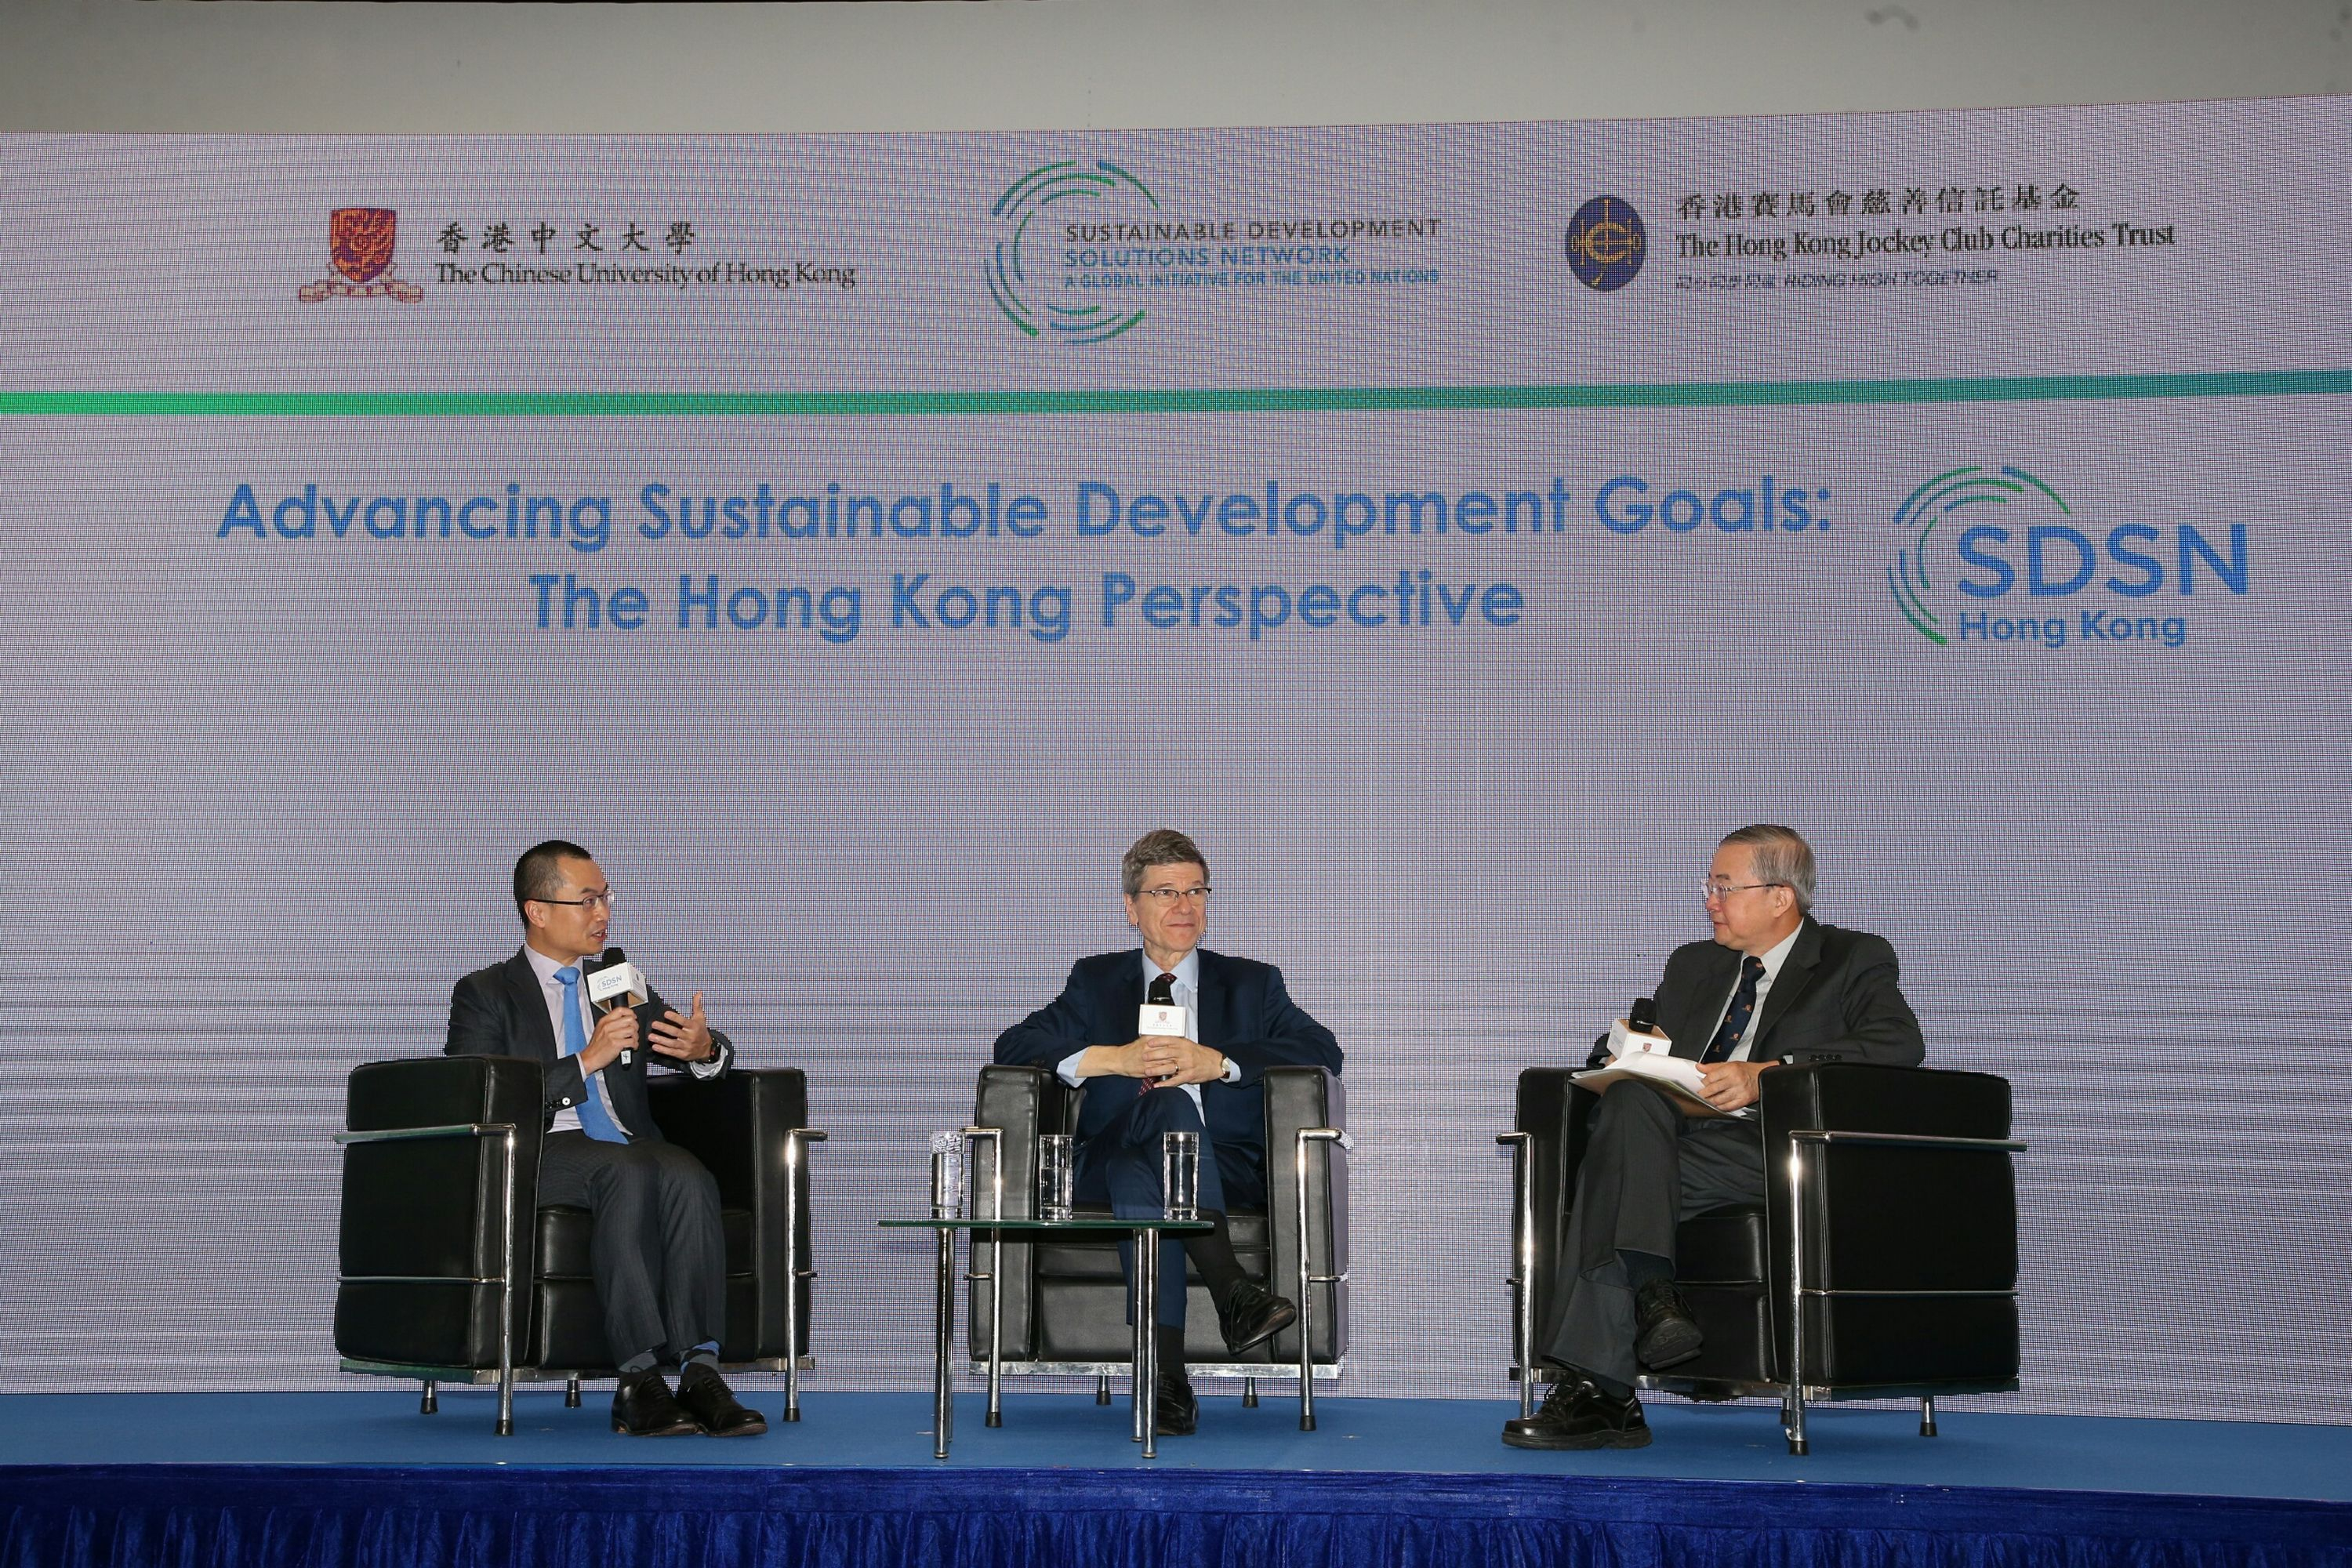 Director of the UN SDSN Professor Jeffrey Sachs (centre); Executive Director, Charities and Community of The Hong Kong Jockey Club Mr Leong Cheung (left), and Director of the Institute of Environment, Energy and Sustainability and AXA Professor of Geography and Resource Management of CUHK Professor Gabriel Lau (right) at the panel discussion on 'Advancing Sustainable Development Goals: The Hong Kong Perspective'.